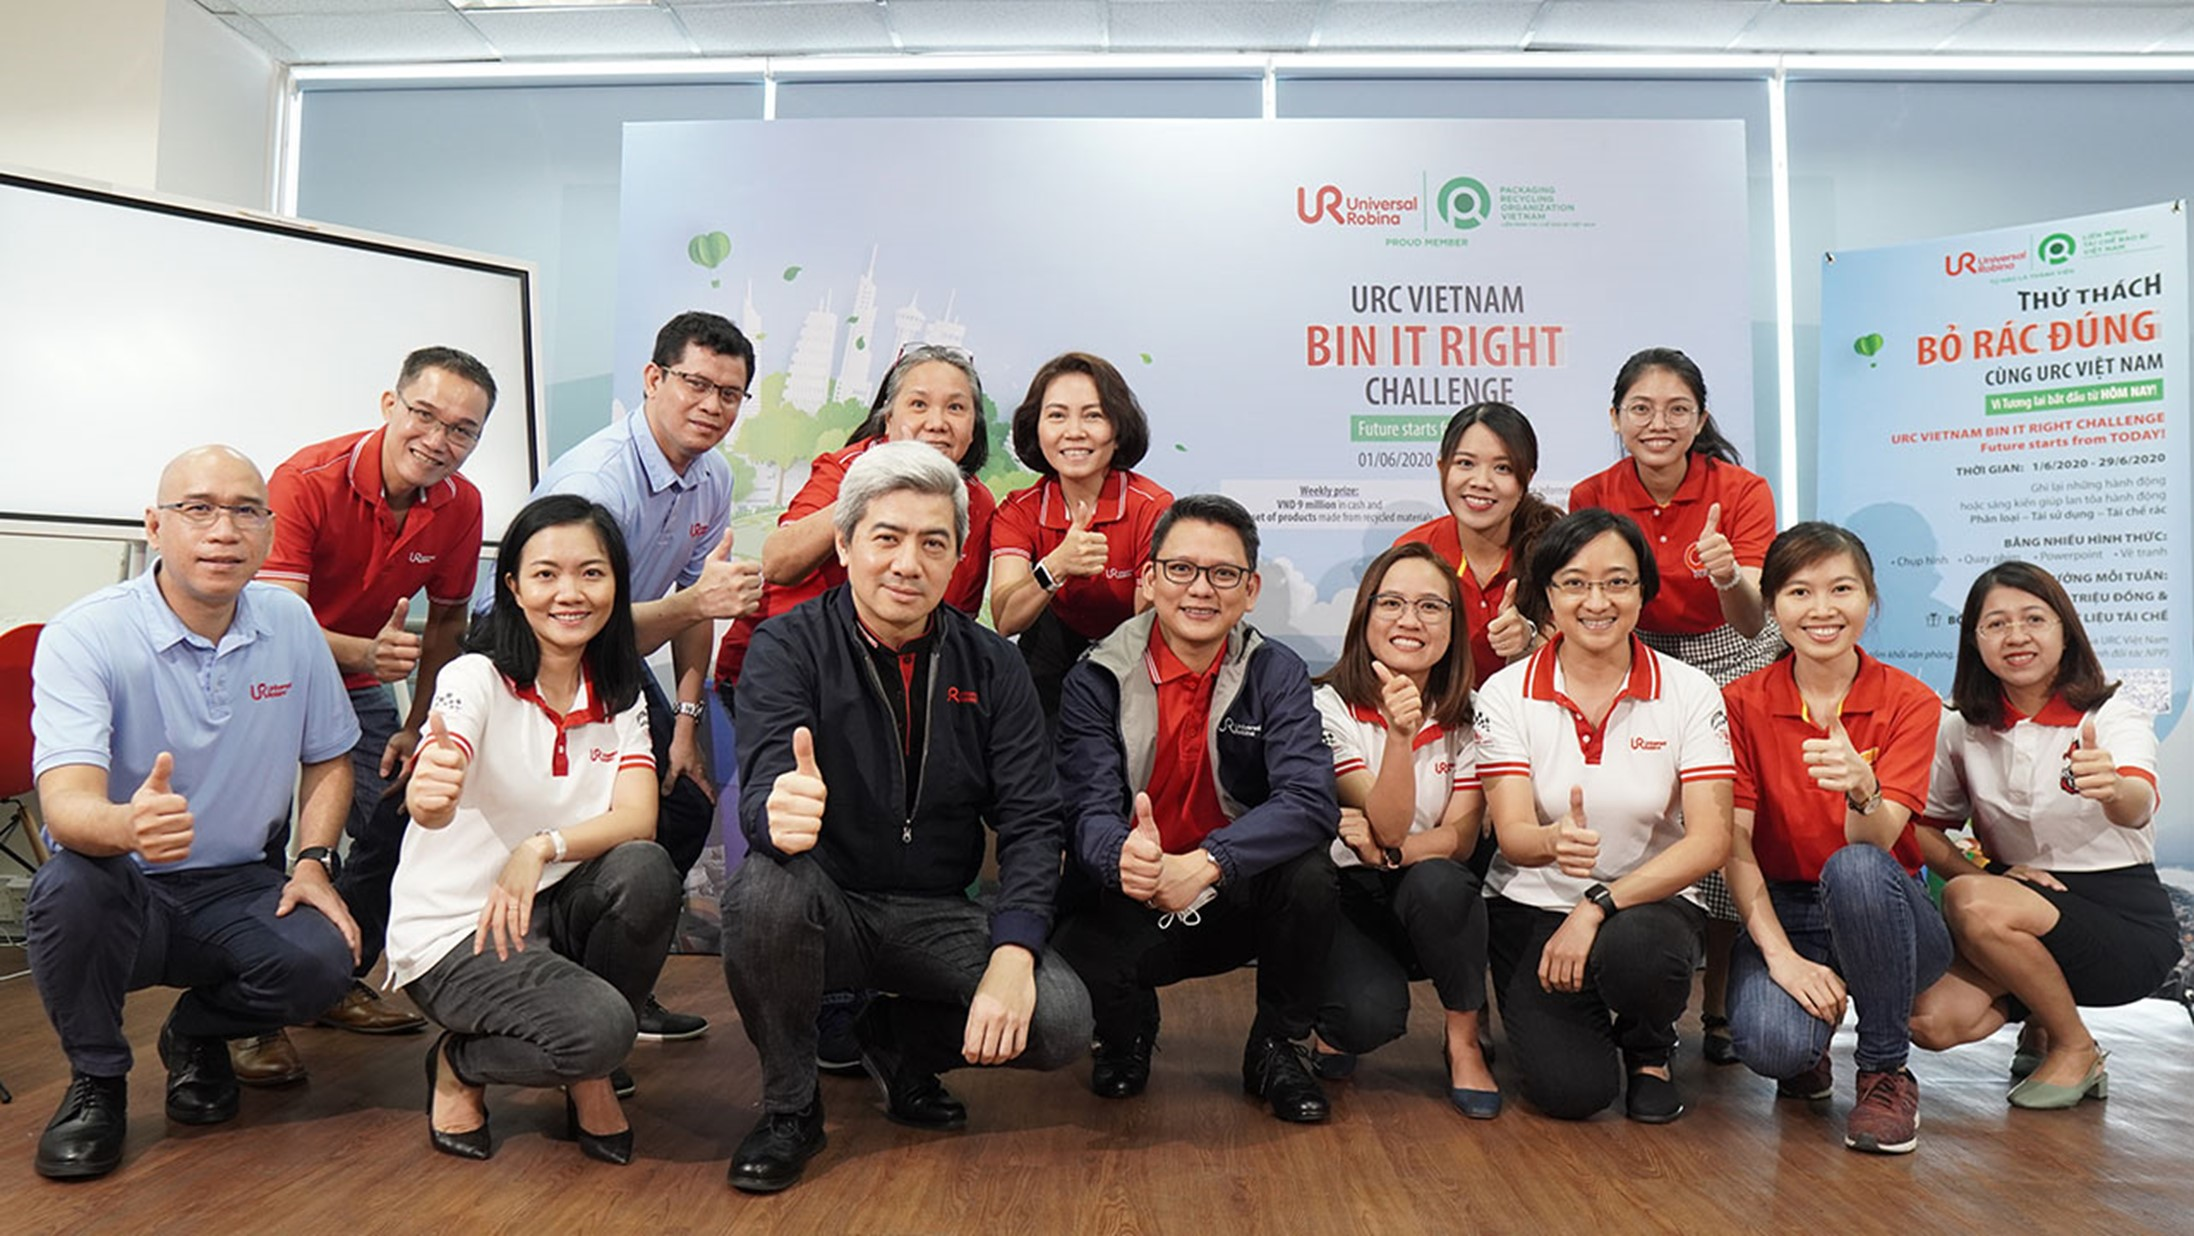 Clean & Green: URC Vietnam's Path to Greater Sustainability